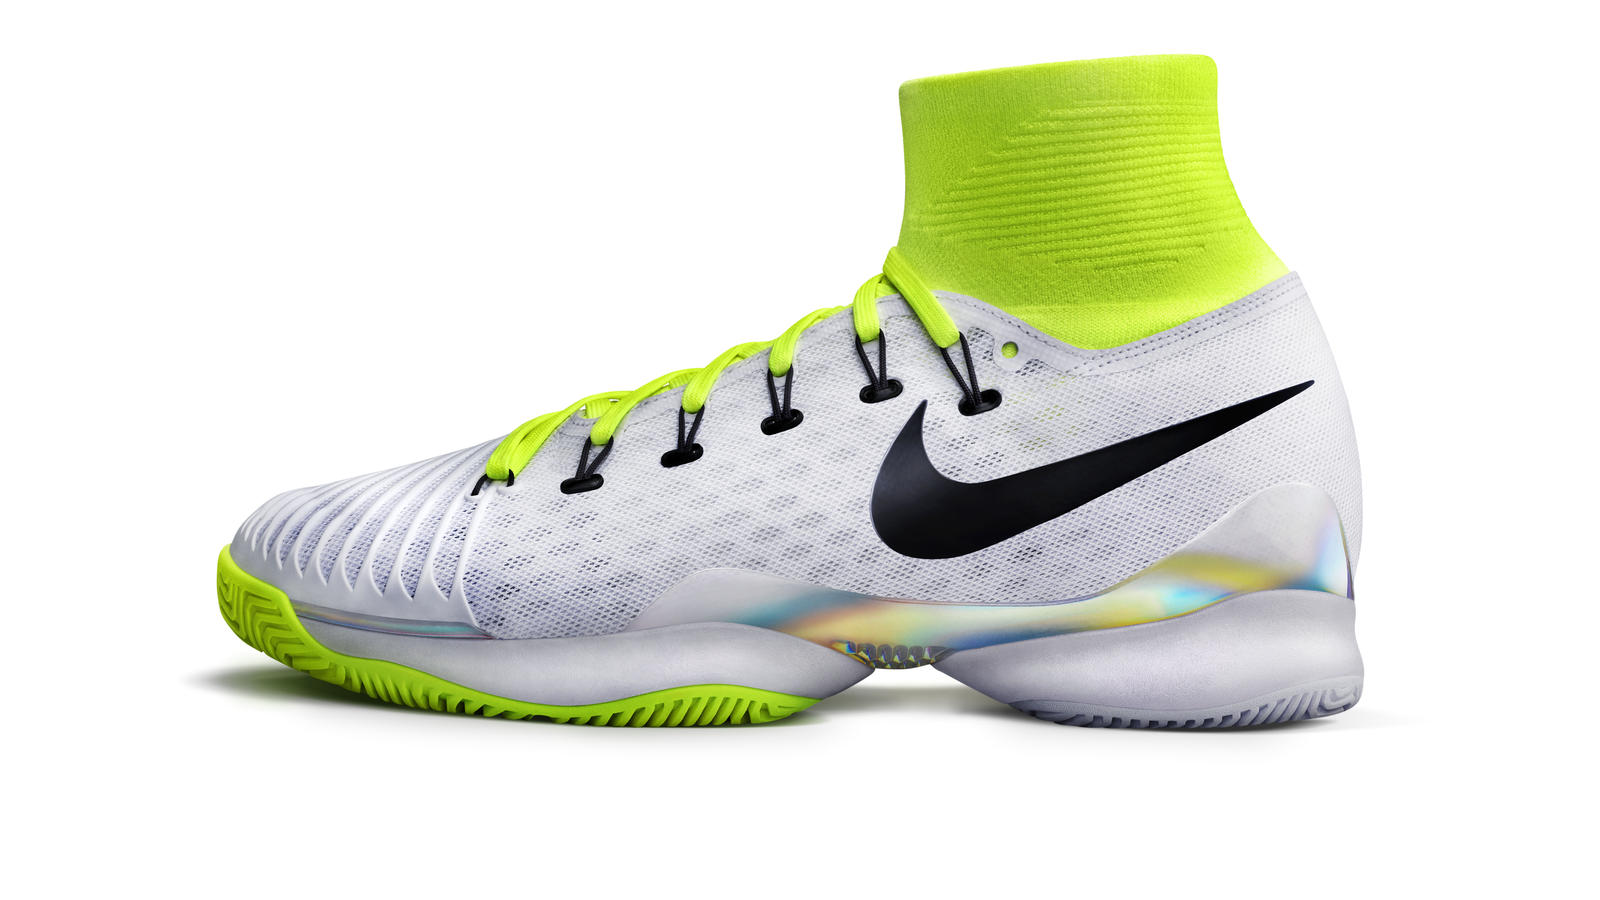 Nikecourt_air_zoom_ultrafly_1_hd_1600